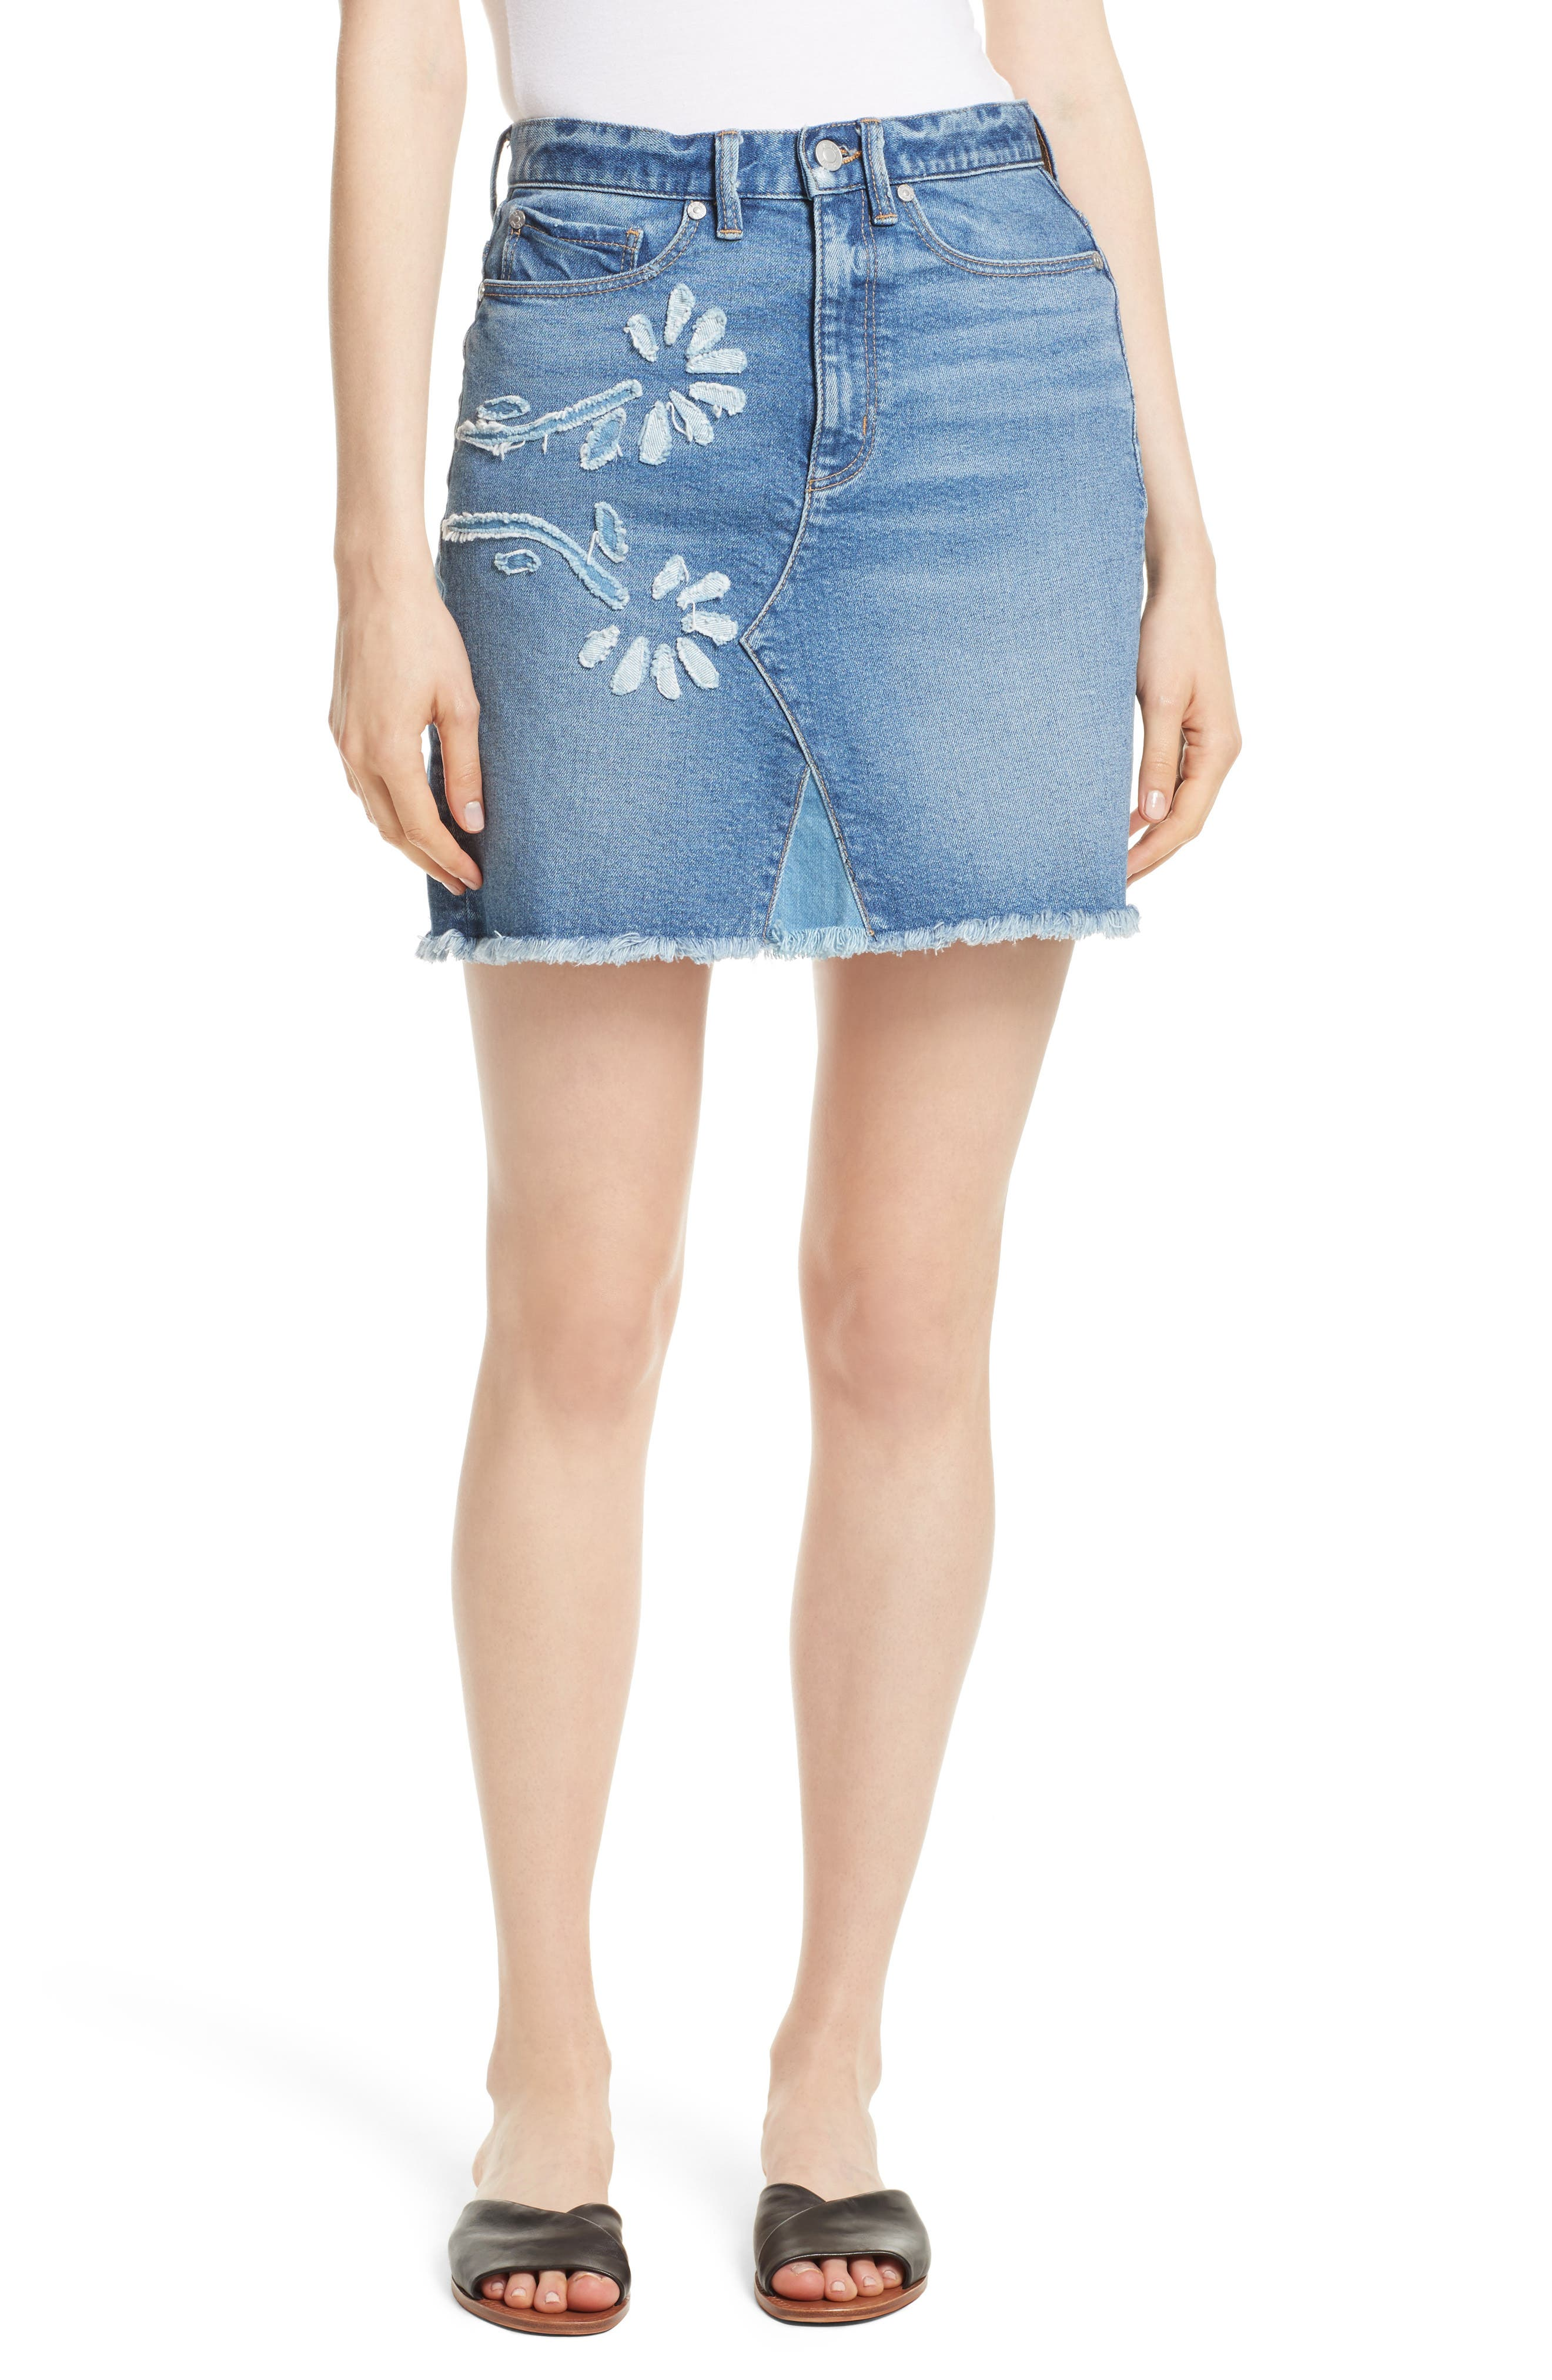 La Vie Rebecca Taylor Floral Patch Denim Miniskirt